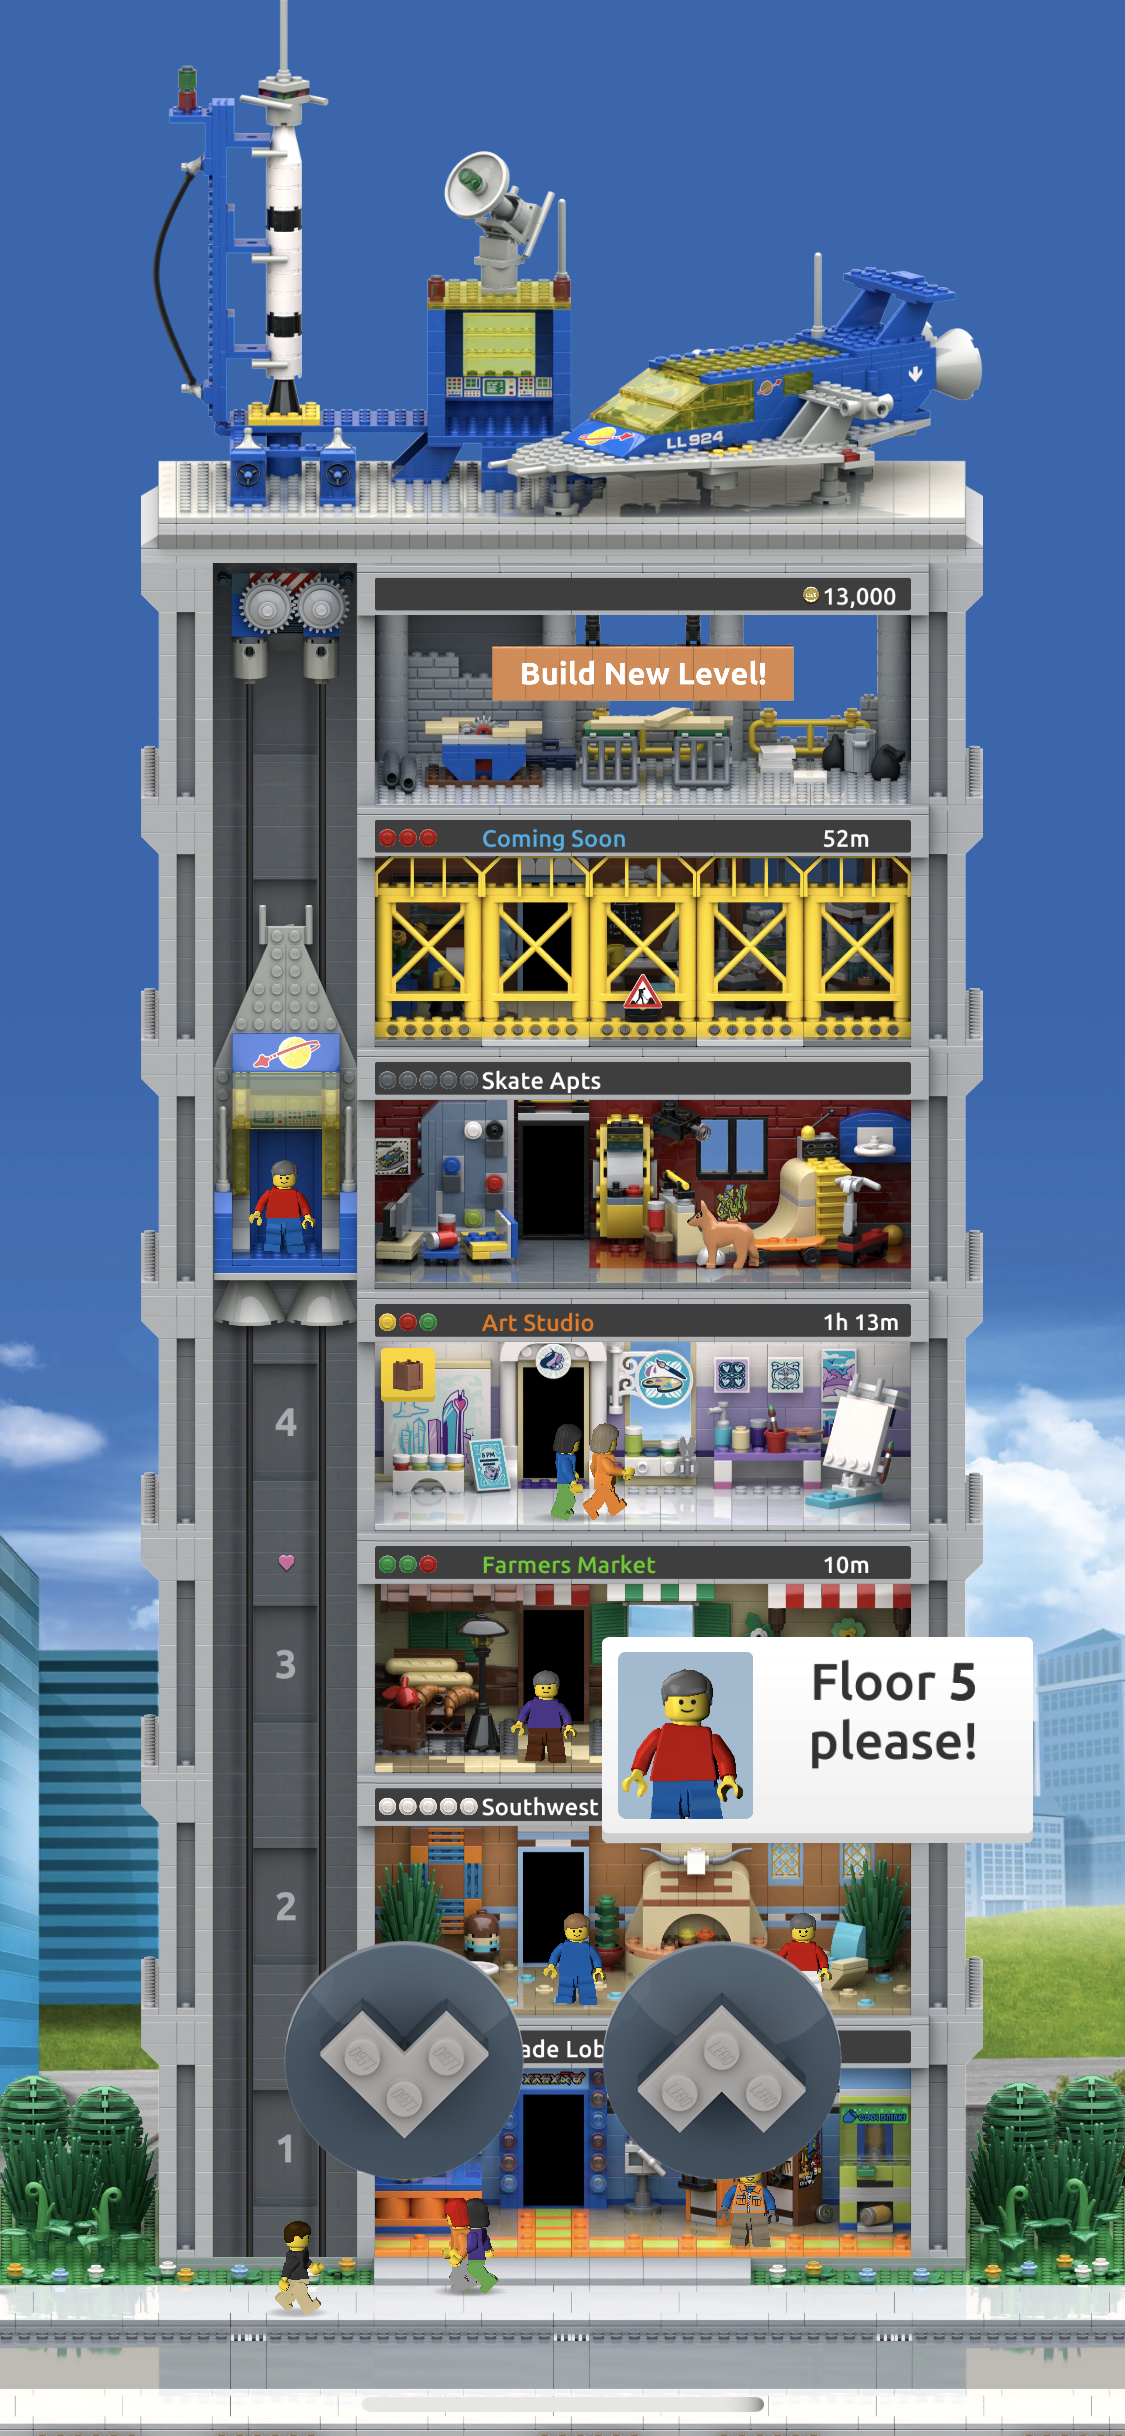 Playing LEGO tower